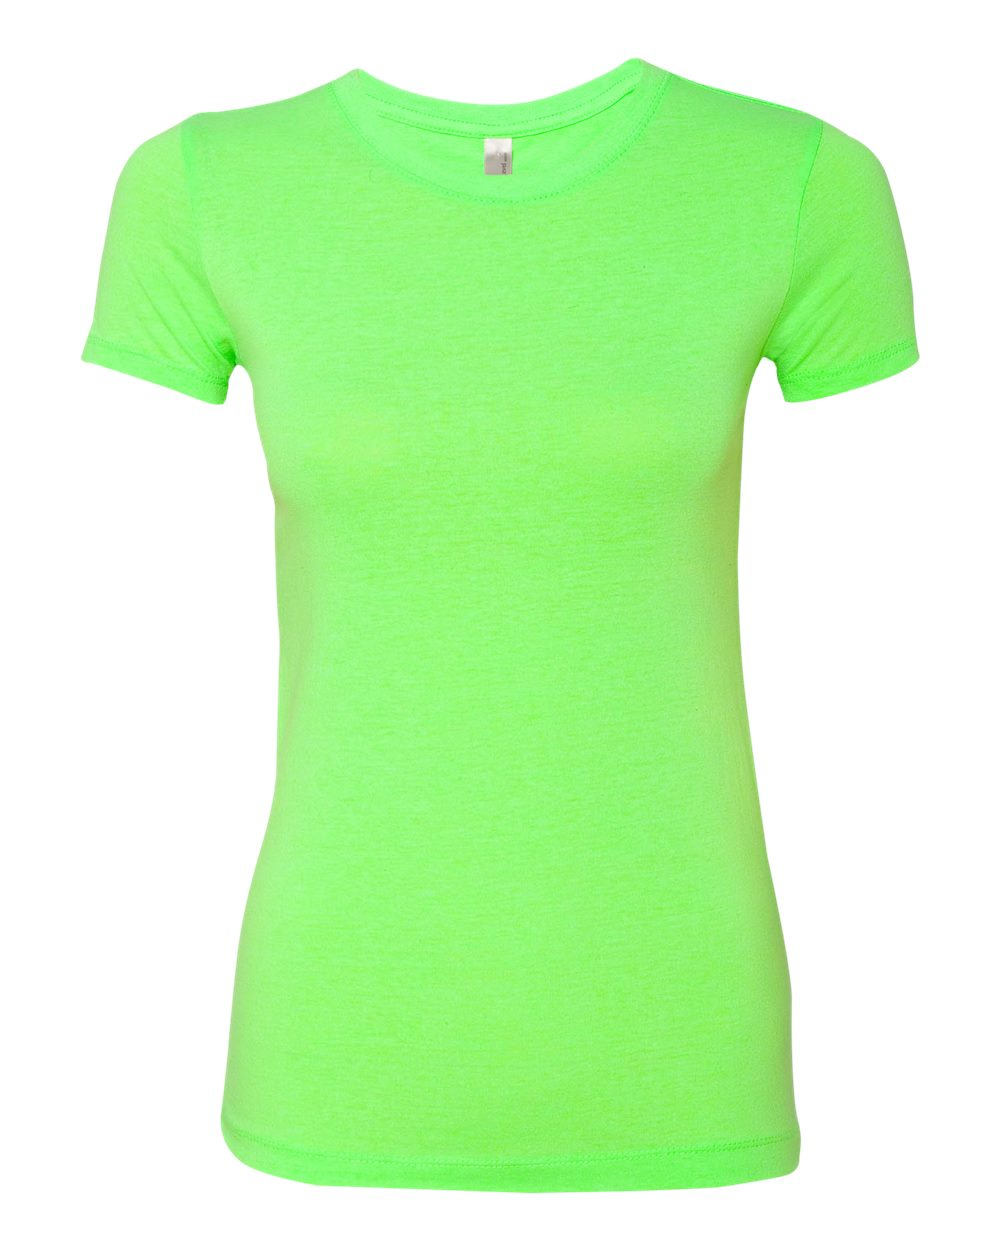 Next_Level_3300L_Neon_Heather_Green_Front_High.jpg